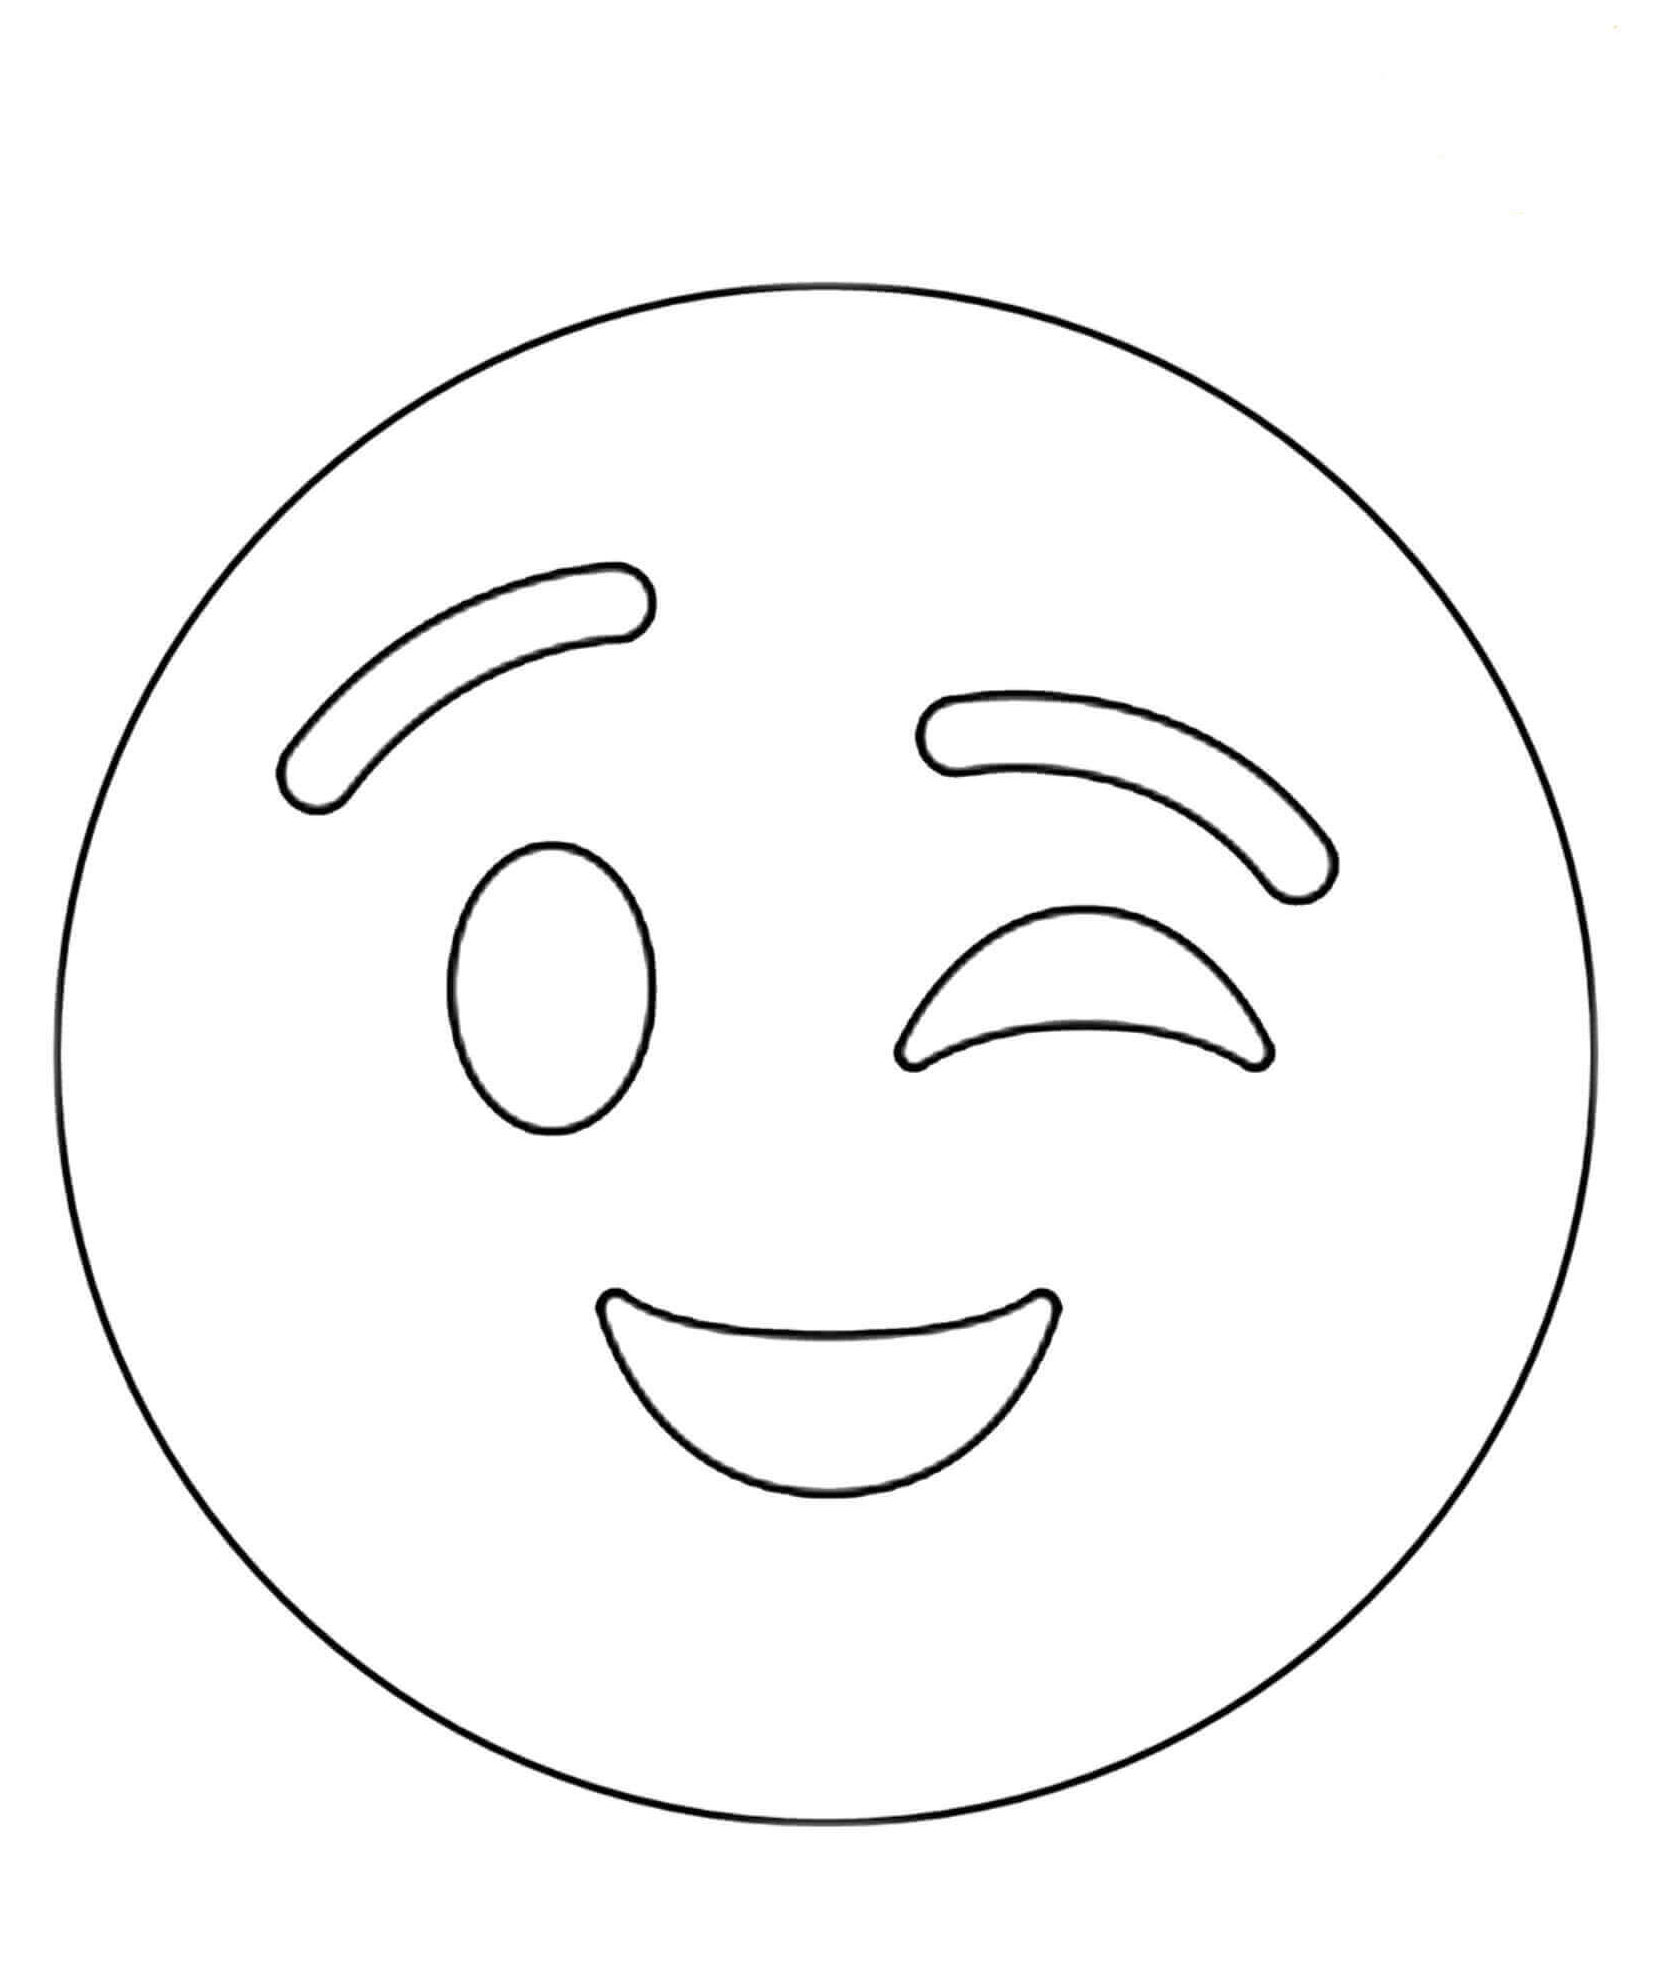 Wink Emoji Coloring Sheets To Print